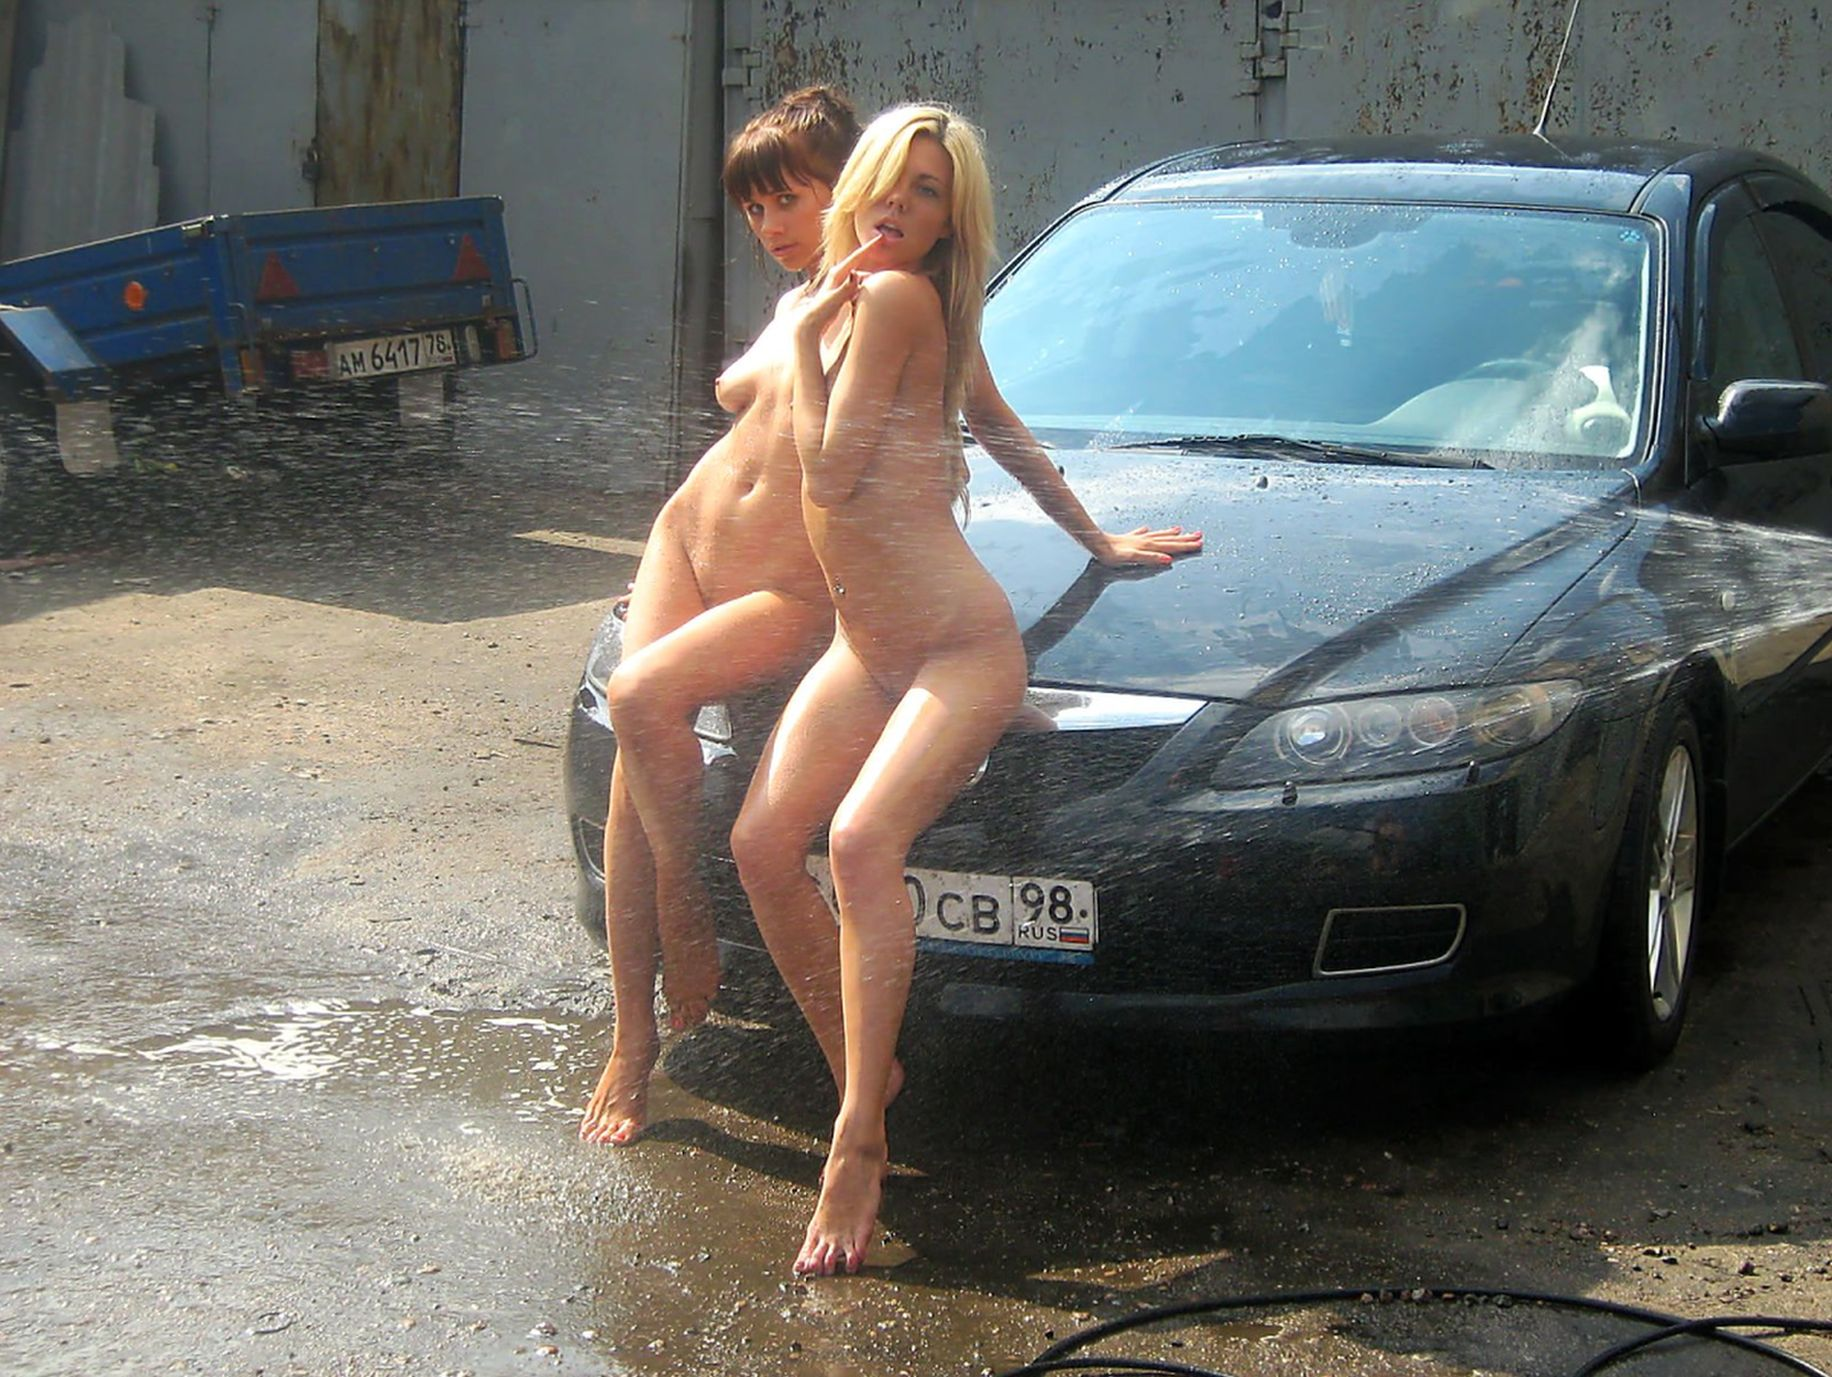 Carwash In Russian Style  Russian Sexy Girls-5020